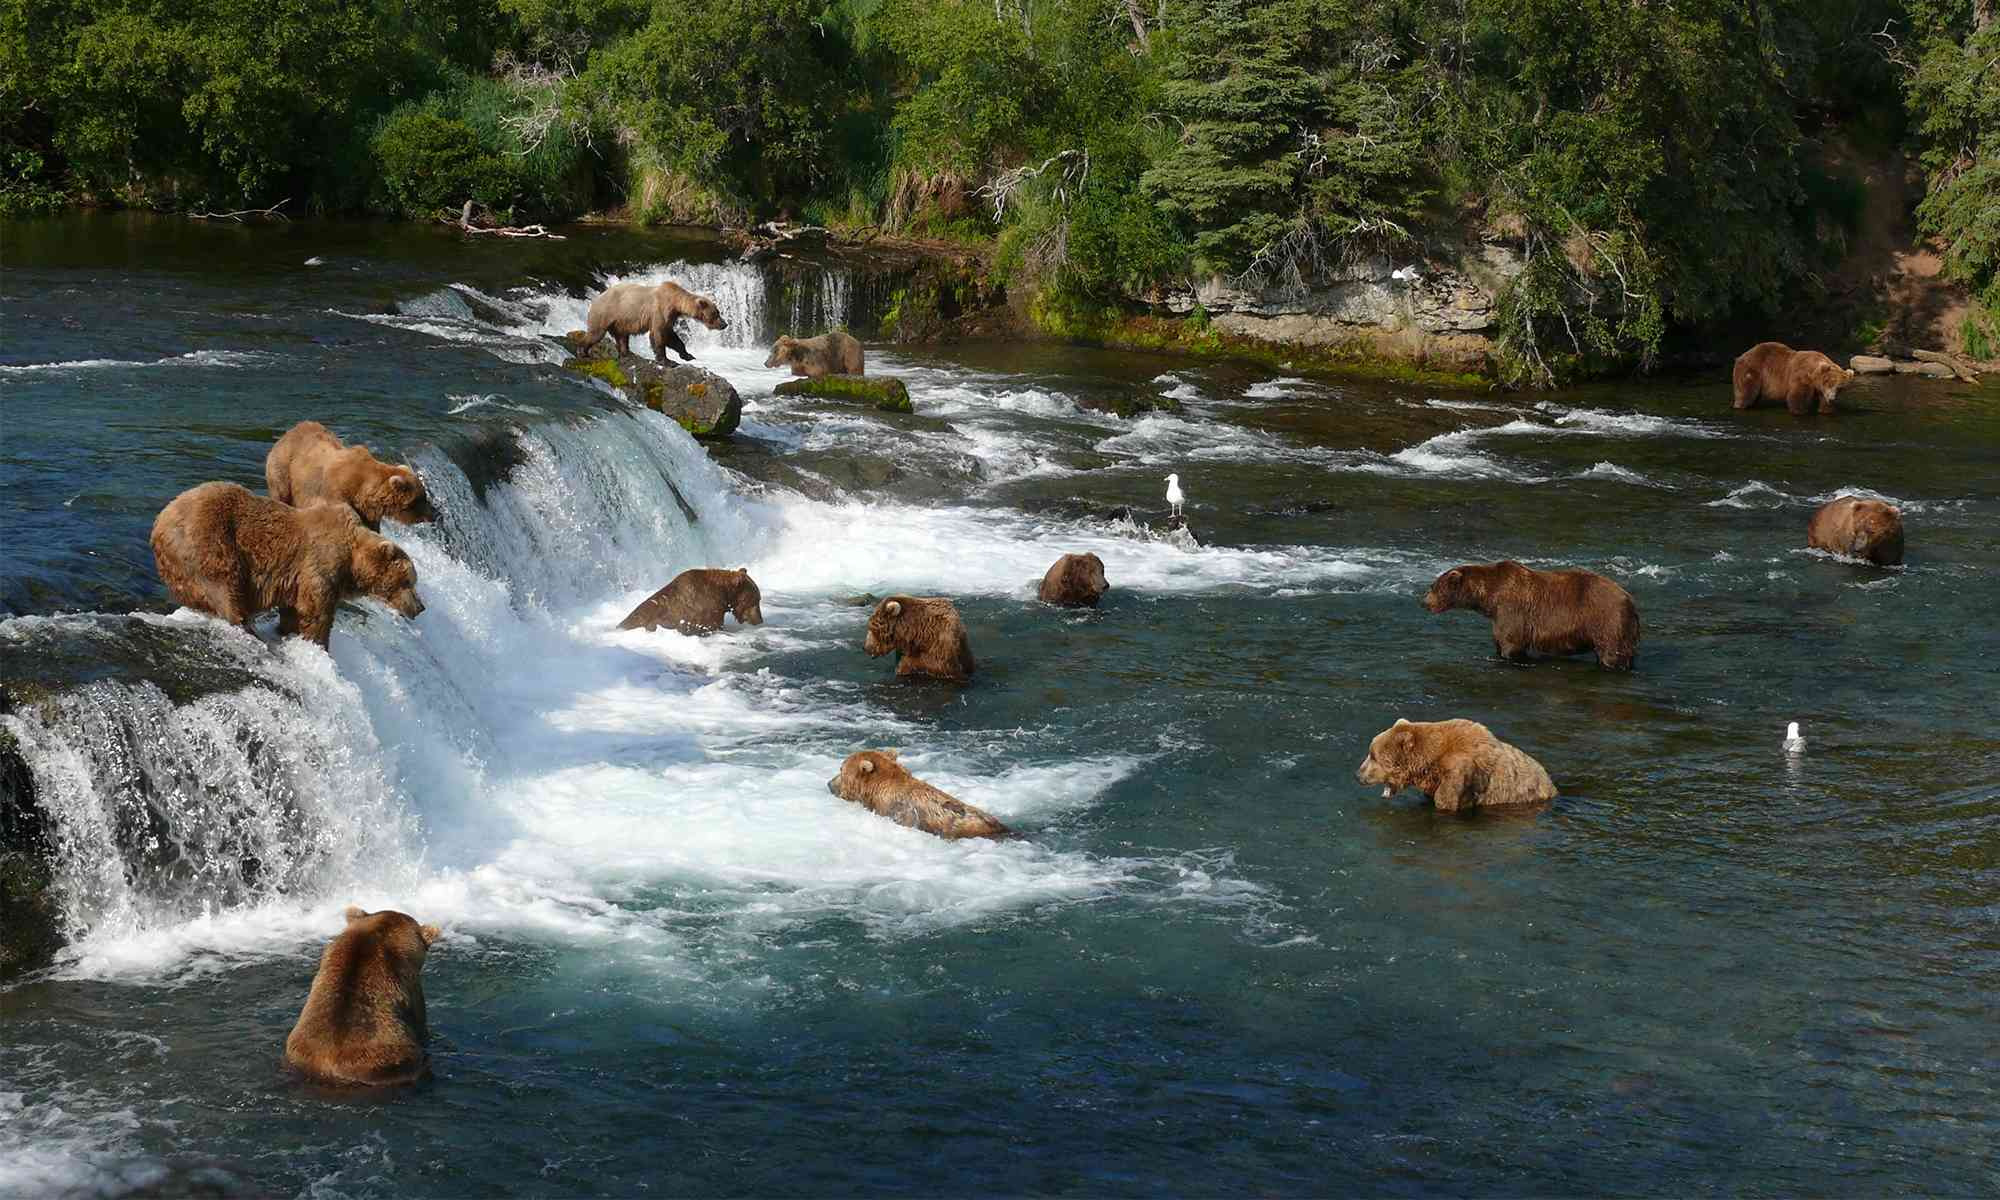 Grizzly bears fishing for salmon katmai national park in alaska